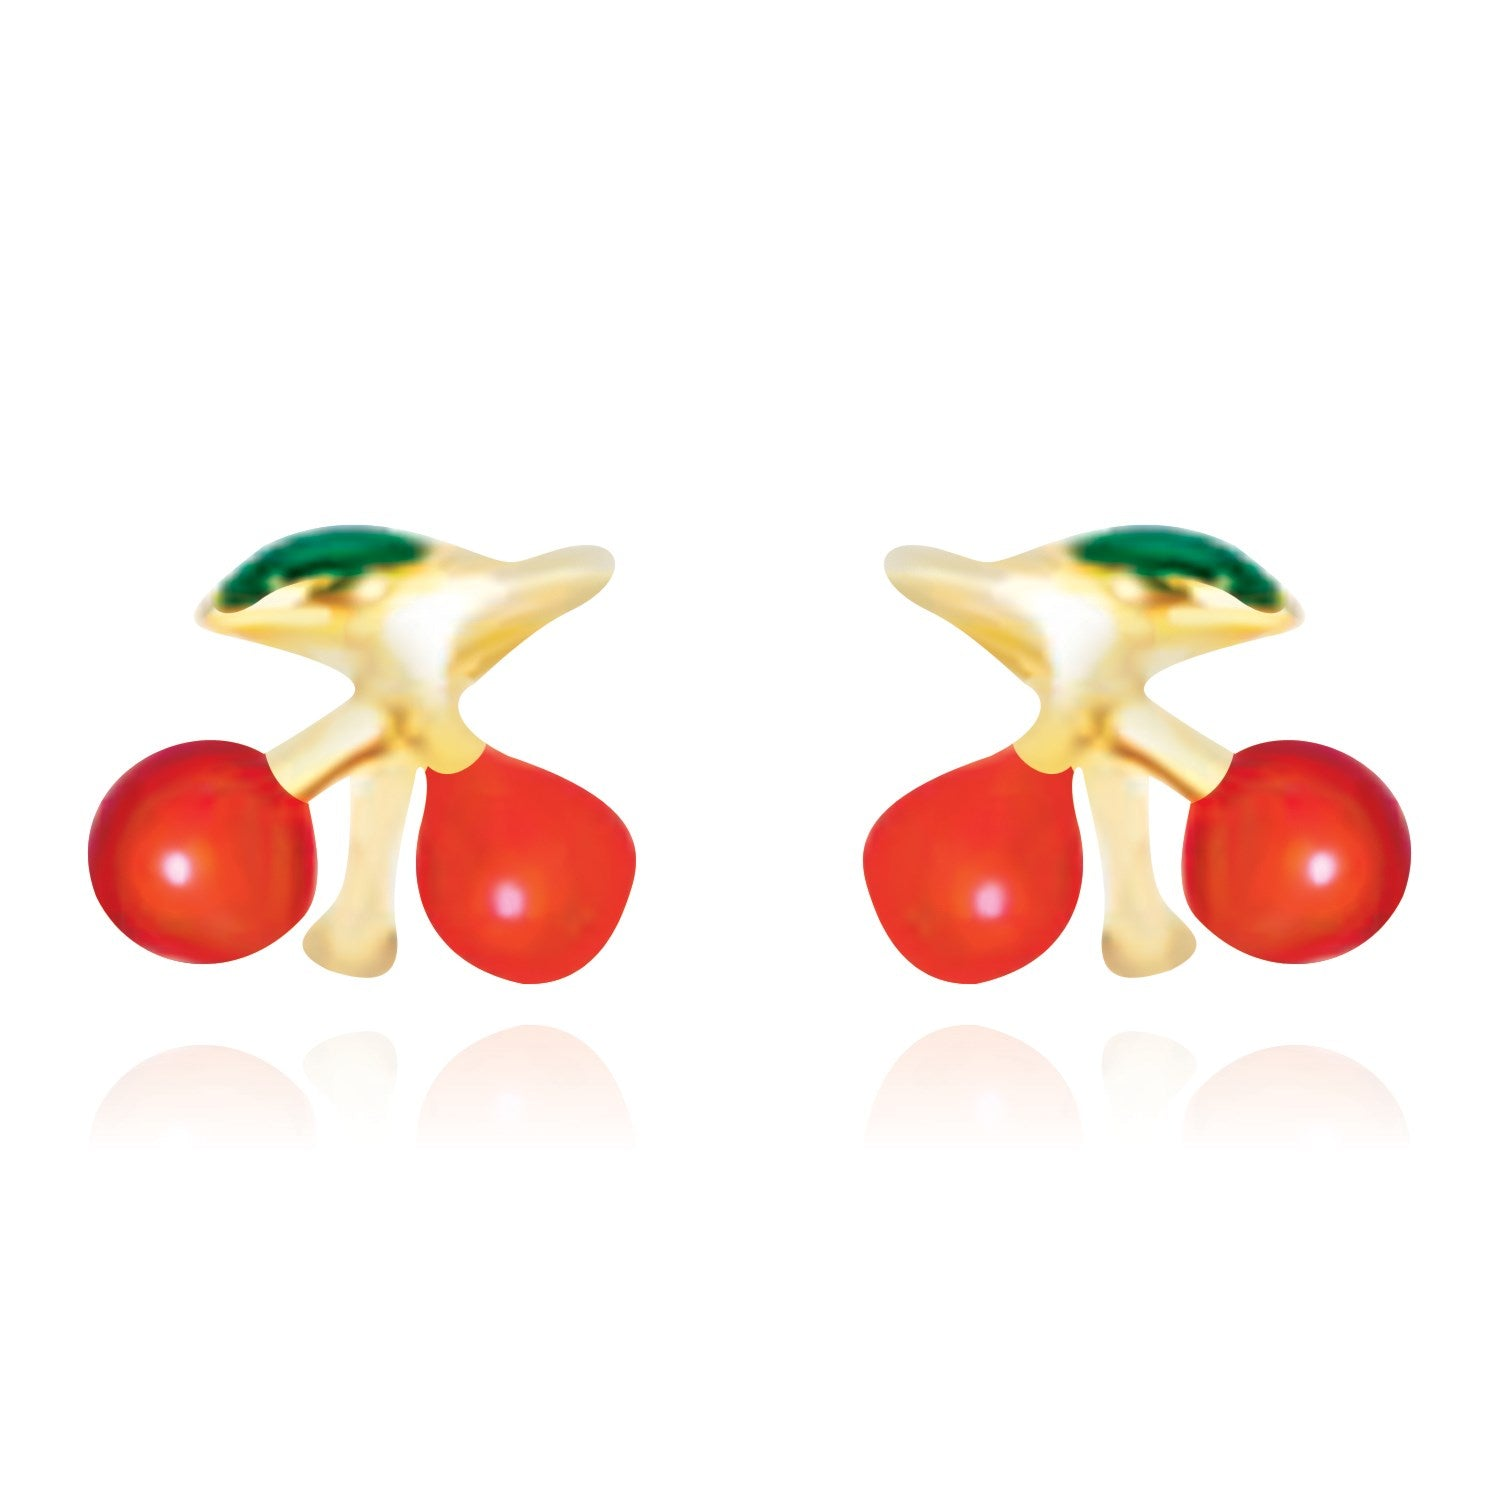 14K Yellow Gold Post Earrings with Cherry Design